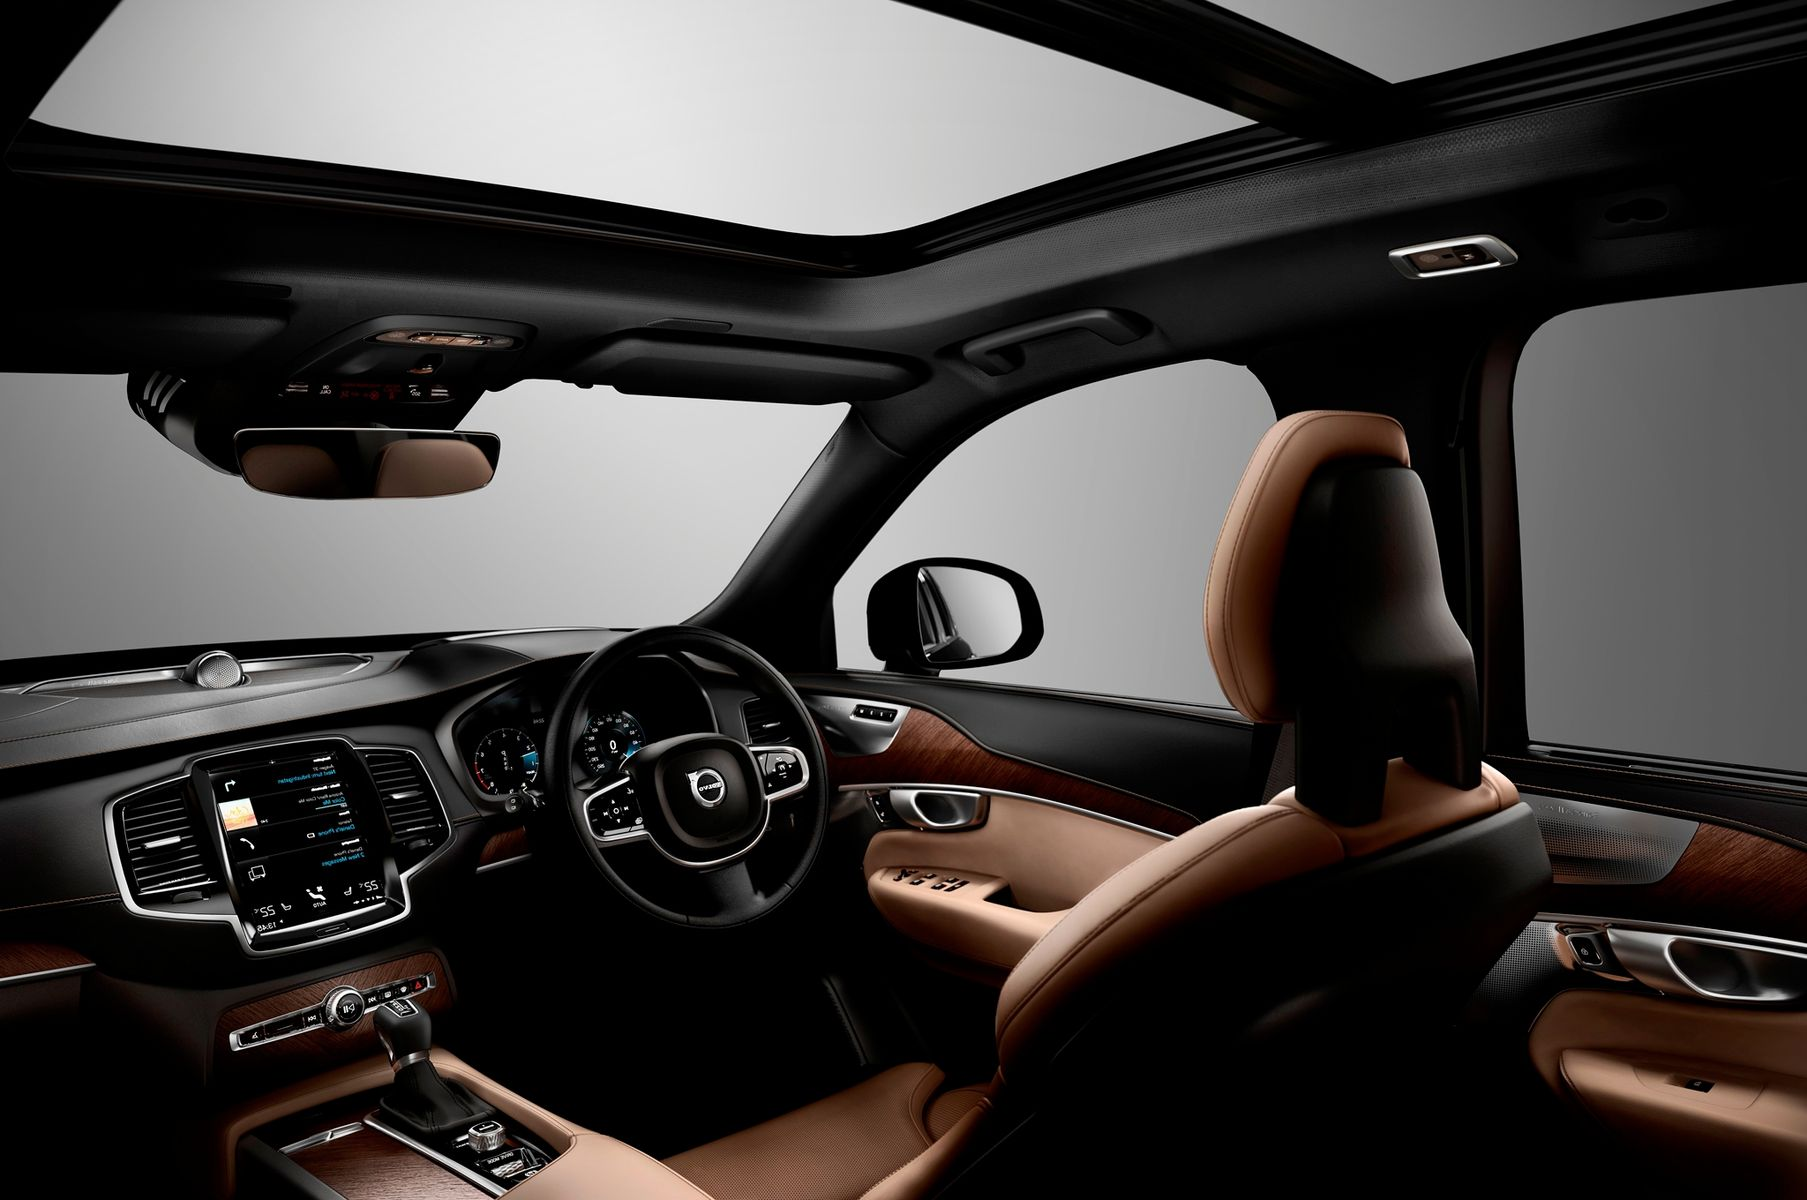 2018 Volvo XC90 interior changes